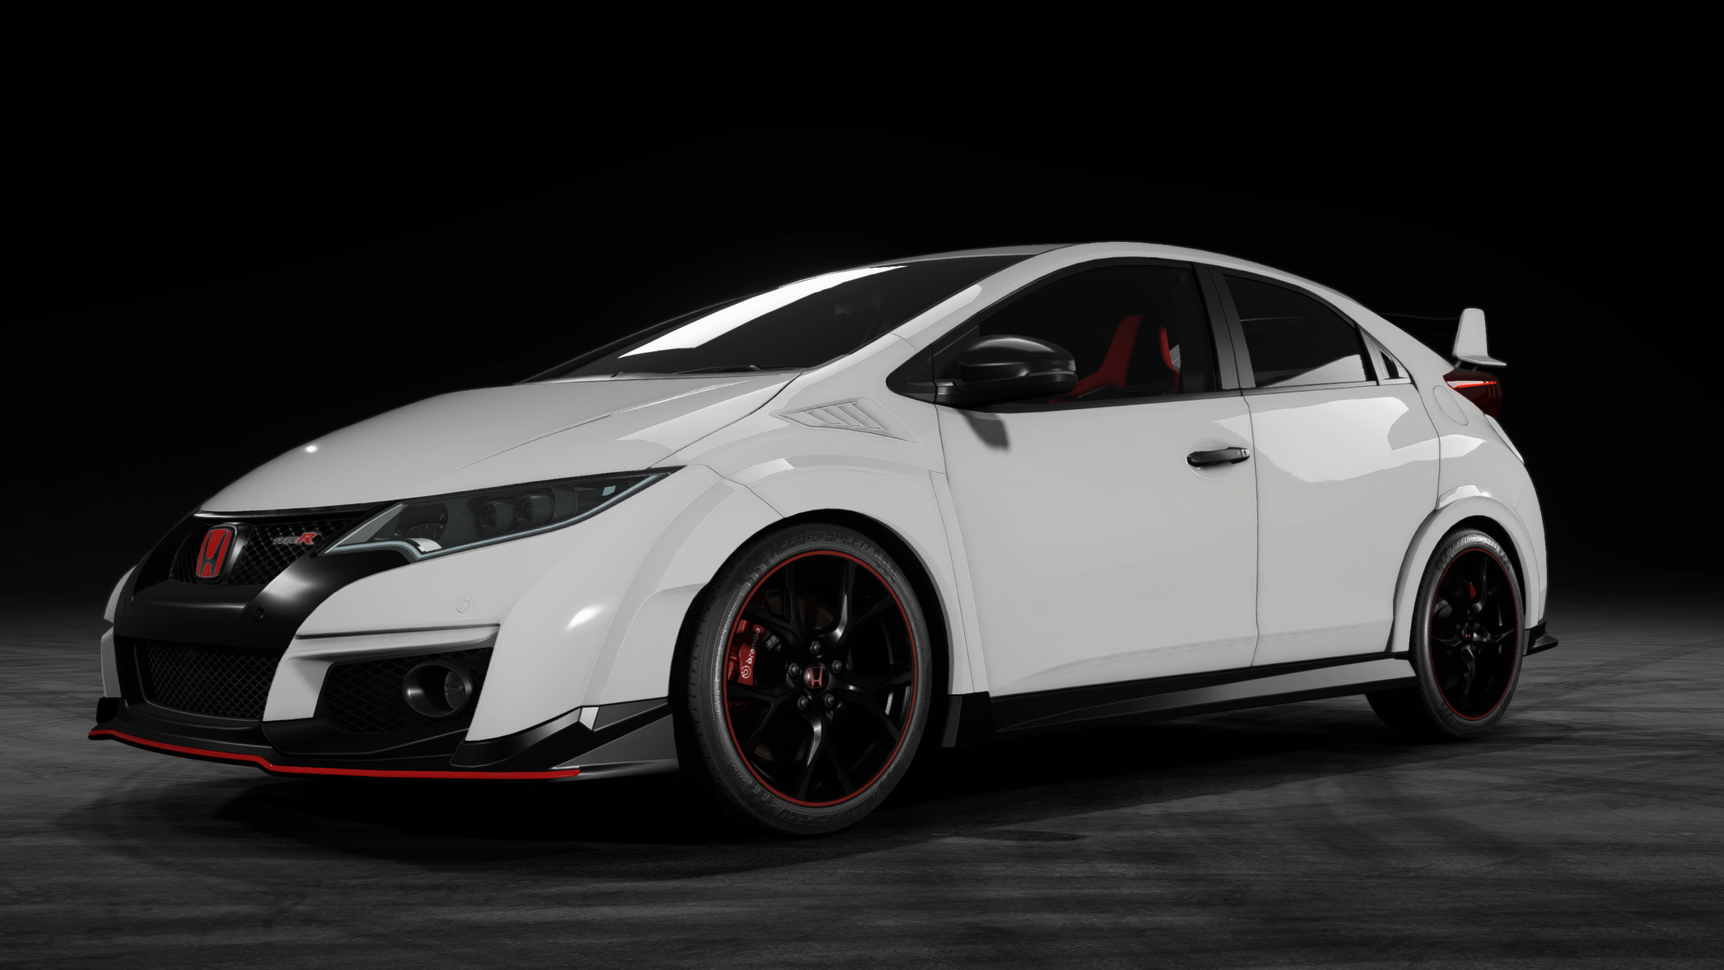 honda civic type r fk2 need for speed wiki fandom. Black Bedroom Furniture Sets. Home Design Ideas